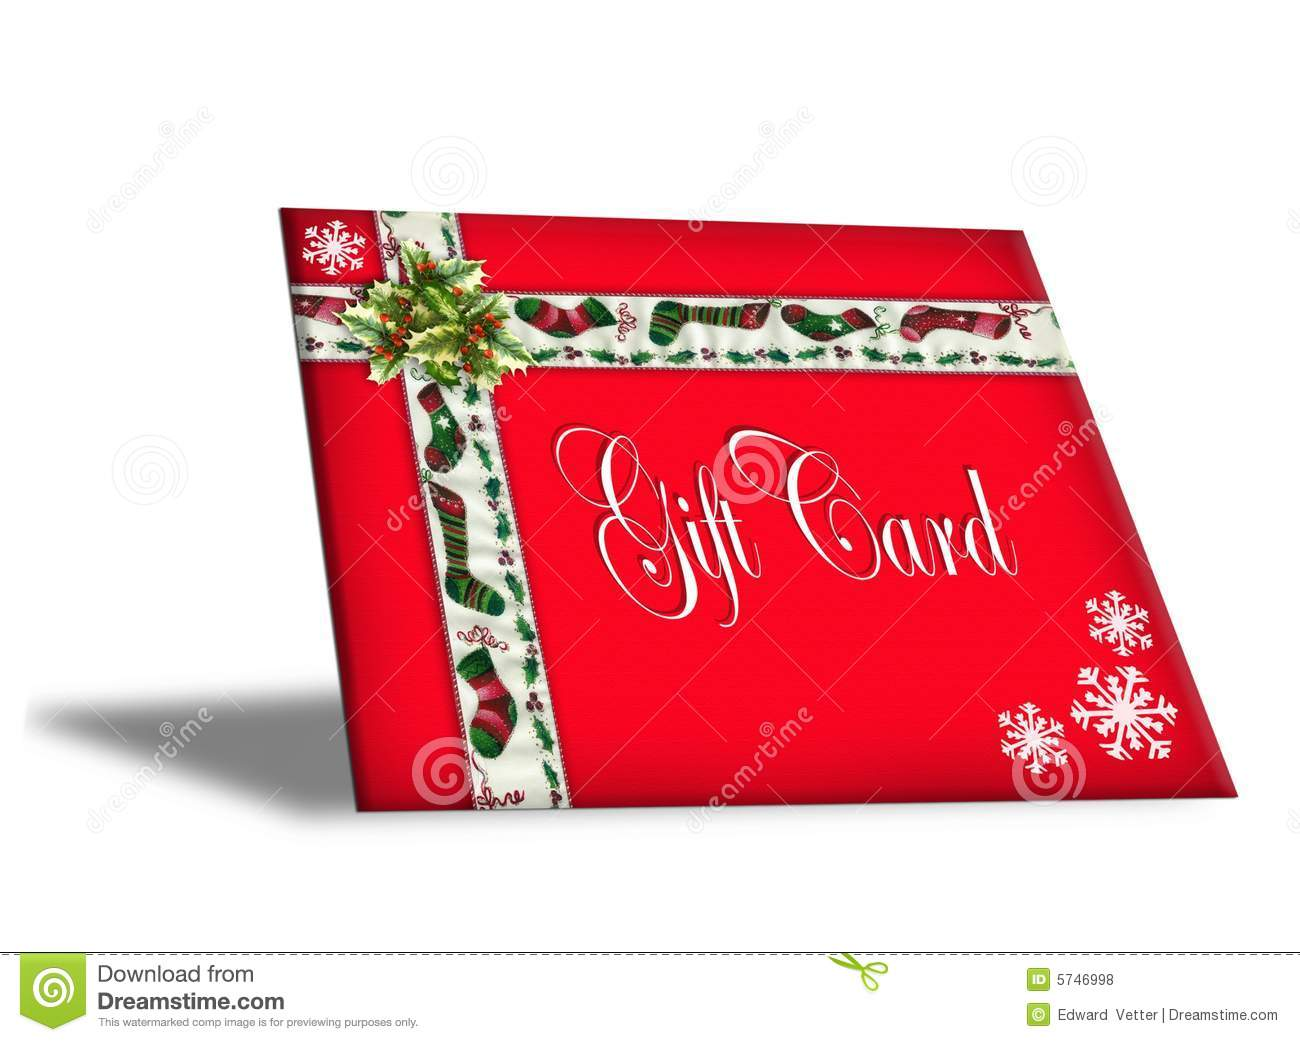 Christmas gift card illustration d stock